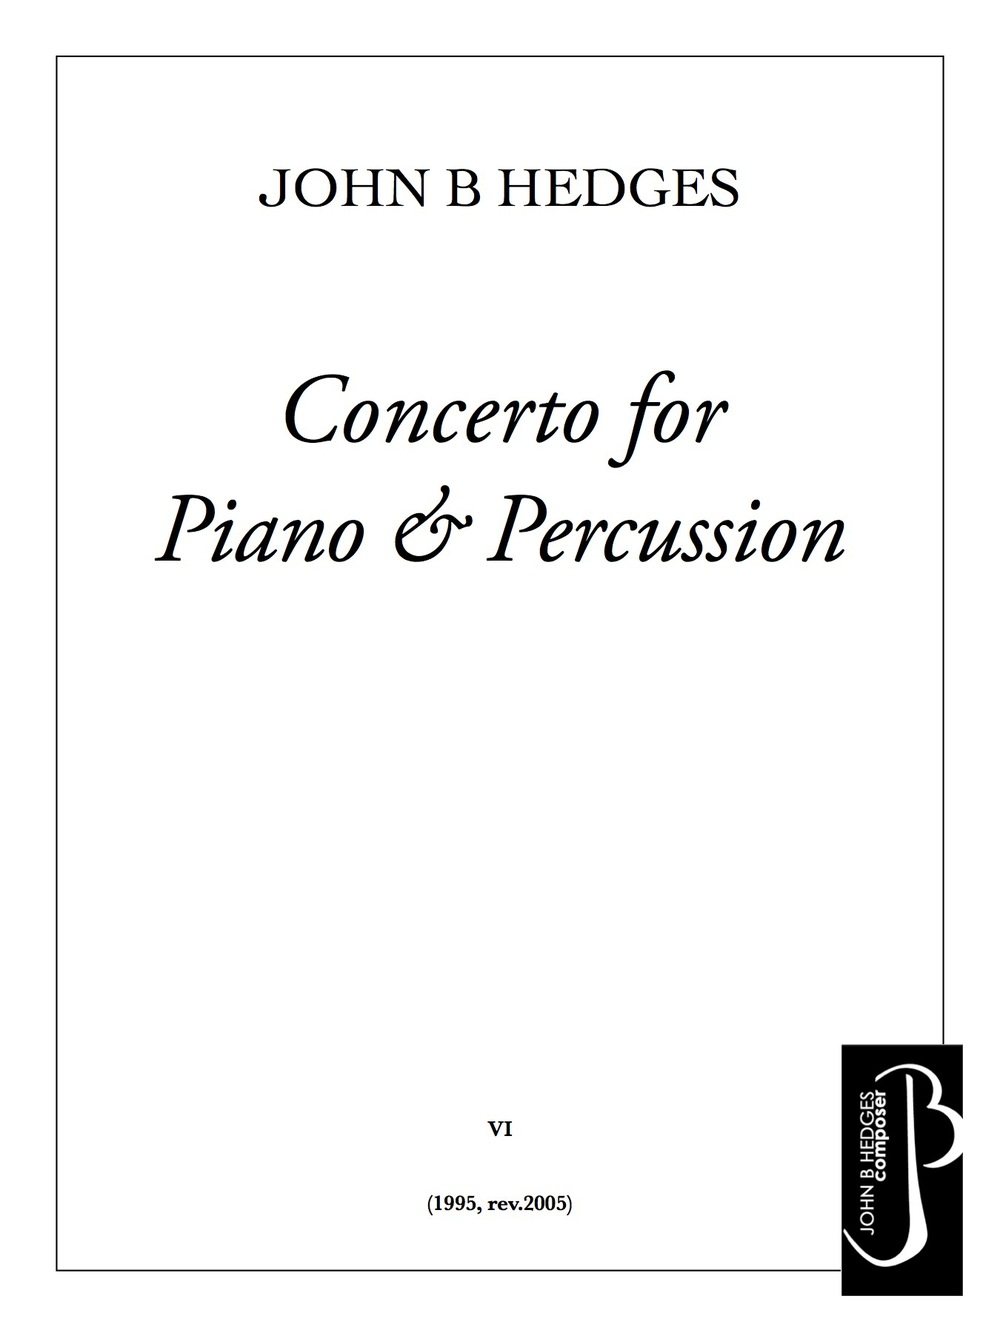 Concerto for Piano & Percussion for solo piano and five percussionists